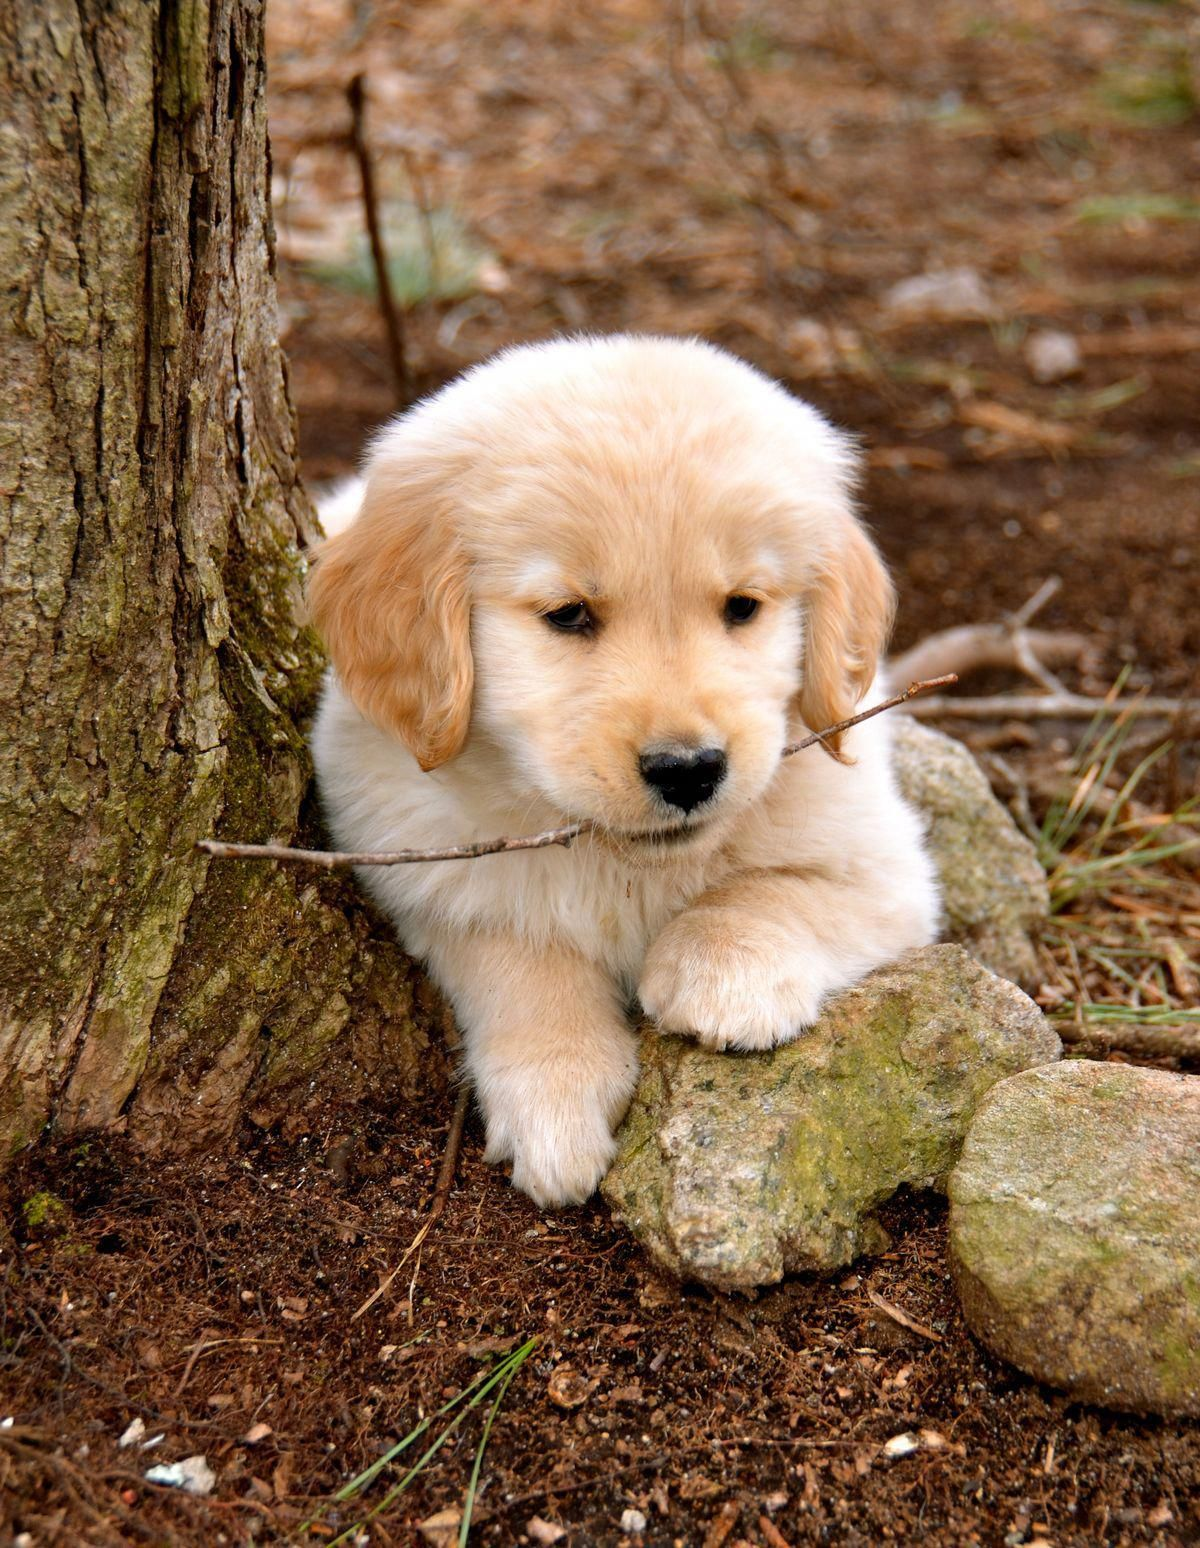 Golden Retriever Puppy Retriever Puppy Golden Retriever Baby Dogs